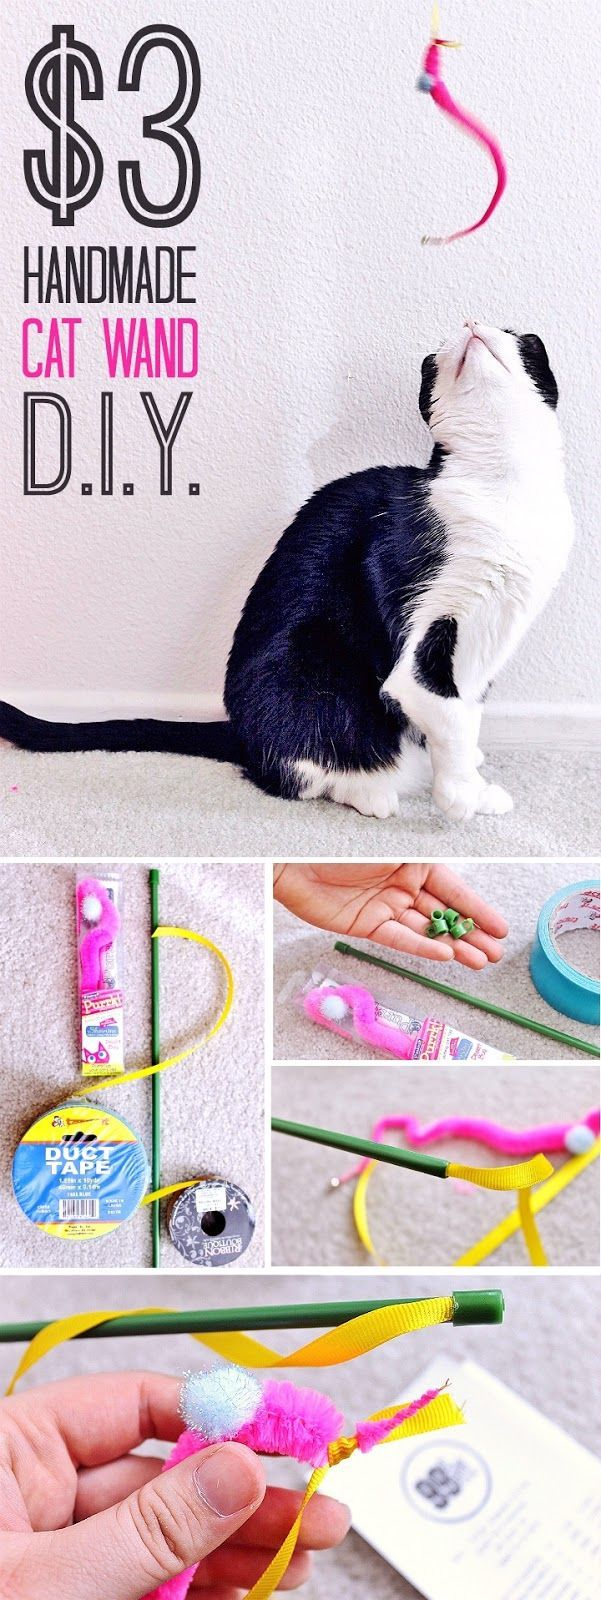 Make 3 of these Cat Wands for $3! $2 D.I.Y. Tennis Ball Octopus Dog Toy- Celebrate Easter with your pets with you shop at 99 Cents Only Stores. Shop adorable Easter baskets and decor, and grab supplies for affordable D.I.Y pet toys! #99YourEaster #DoThe99 #DoingThe99